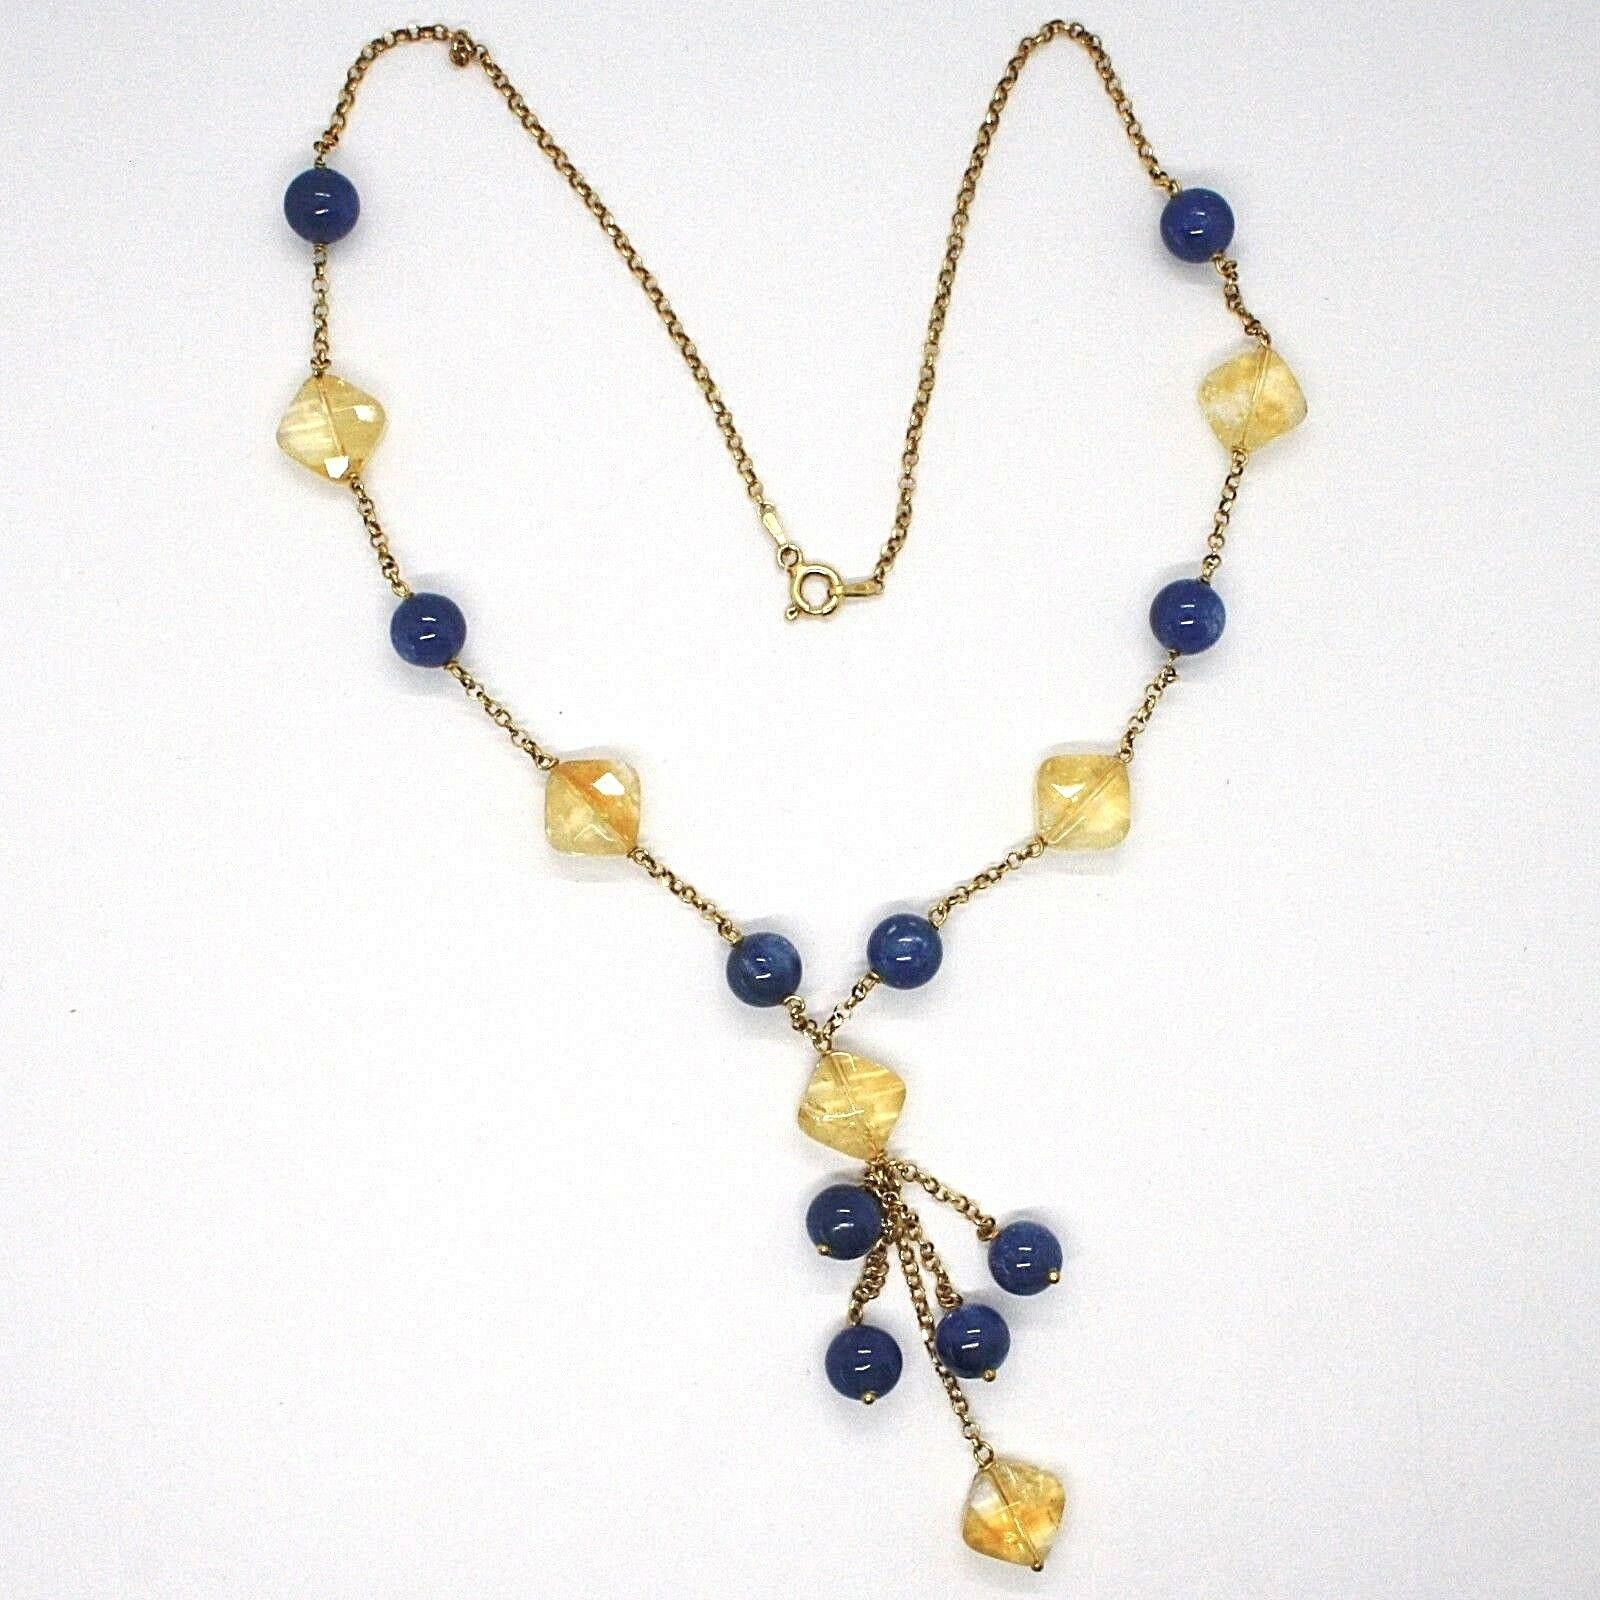 SILVER 925 NECKLACE, YELLOW, QUARTZ CITRINE, KYANITE, PENDANT BUNCH